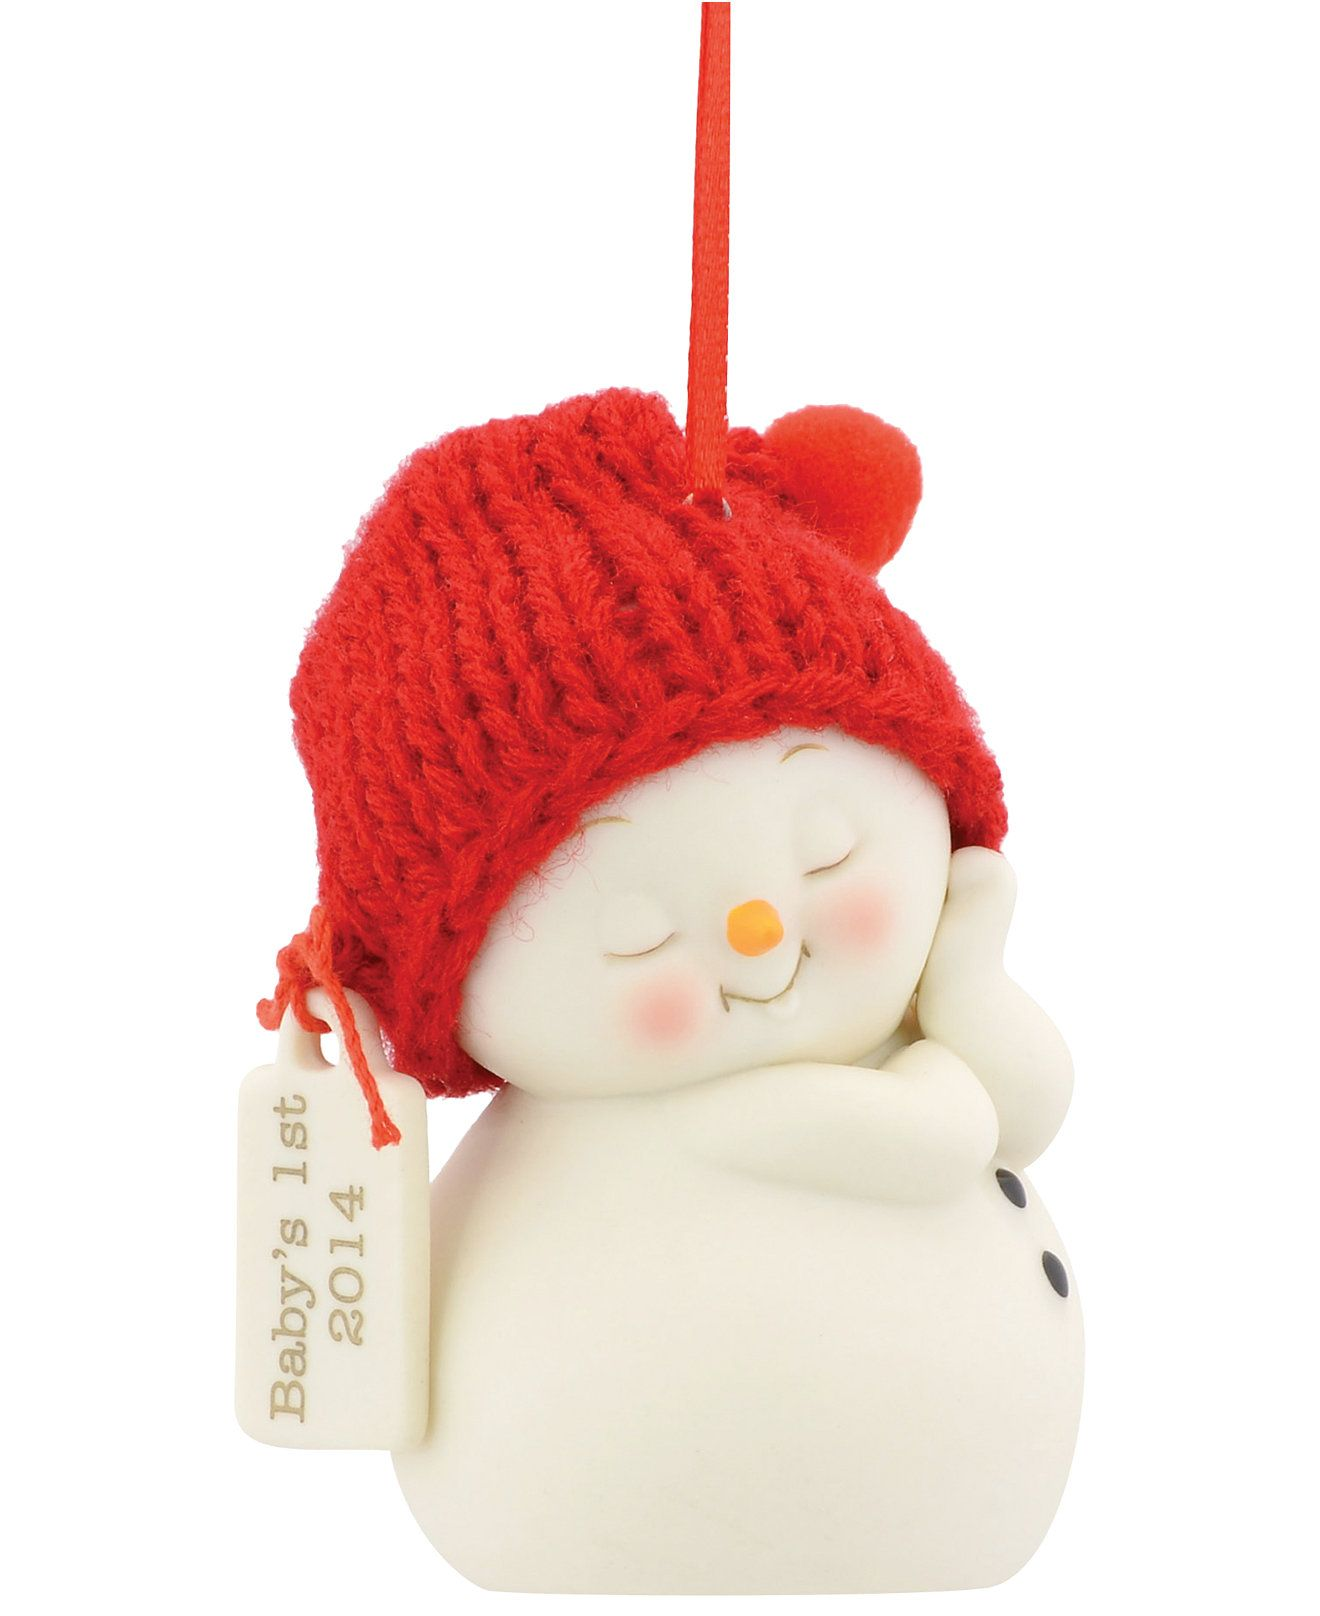 Department 56 Snowpinions Baby's First Ornament 2014 ...